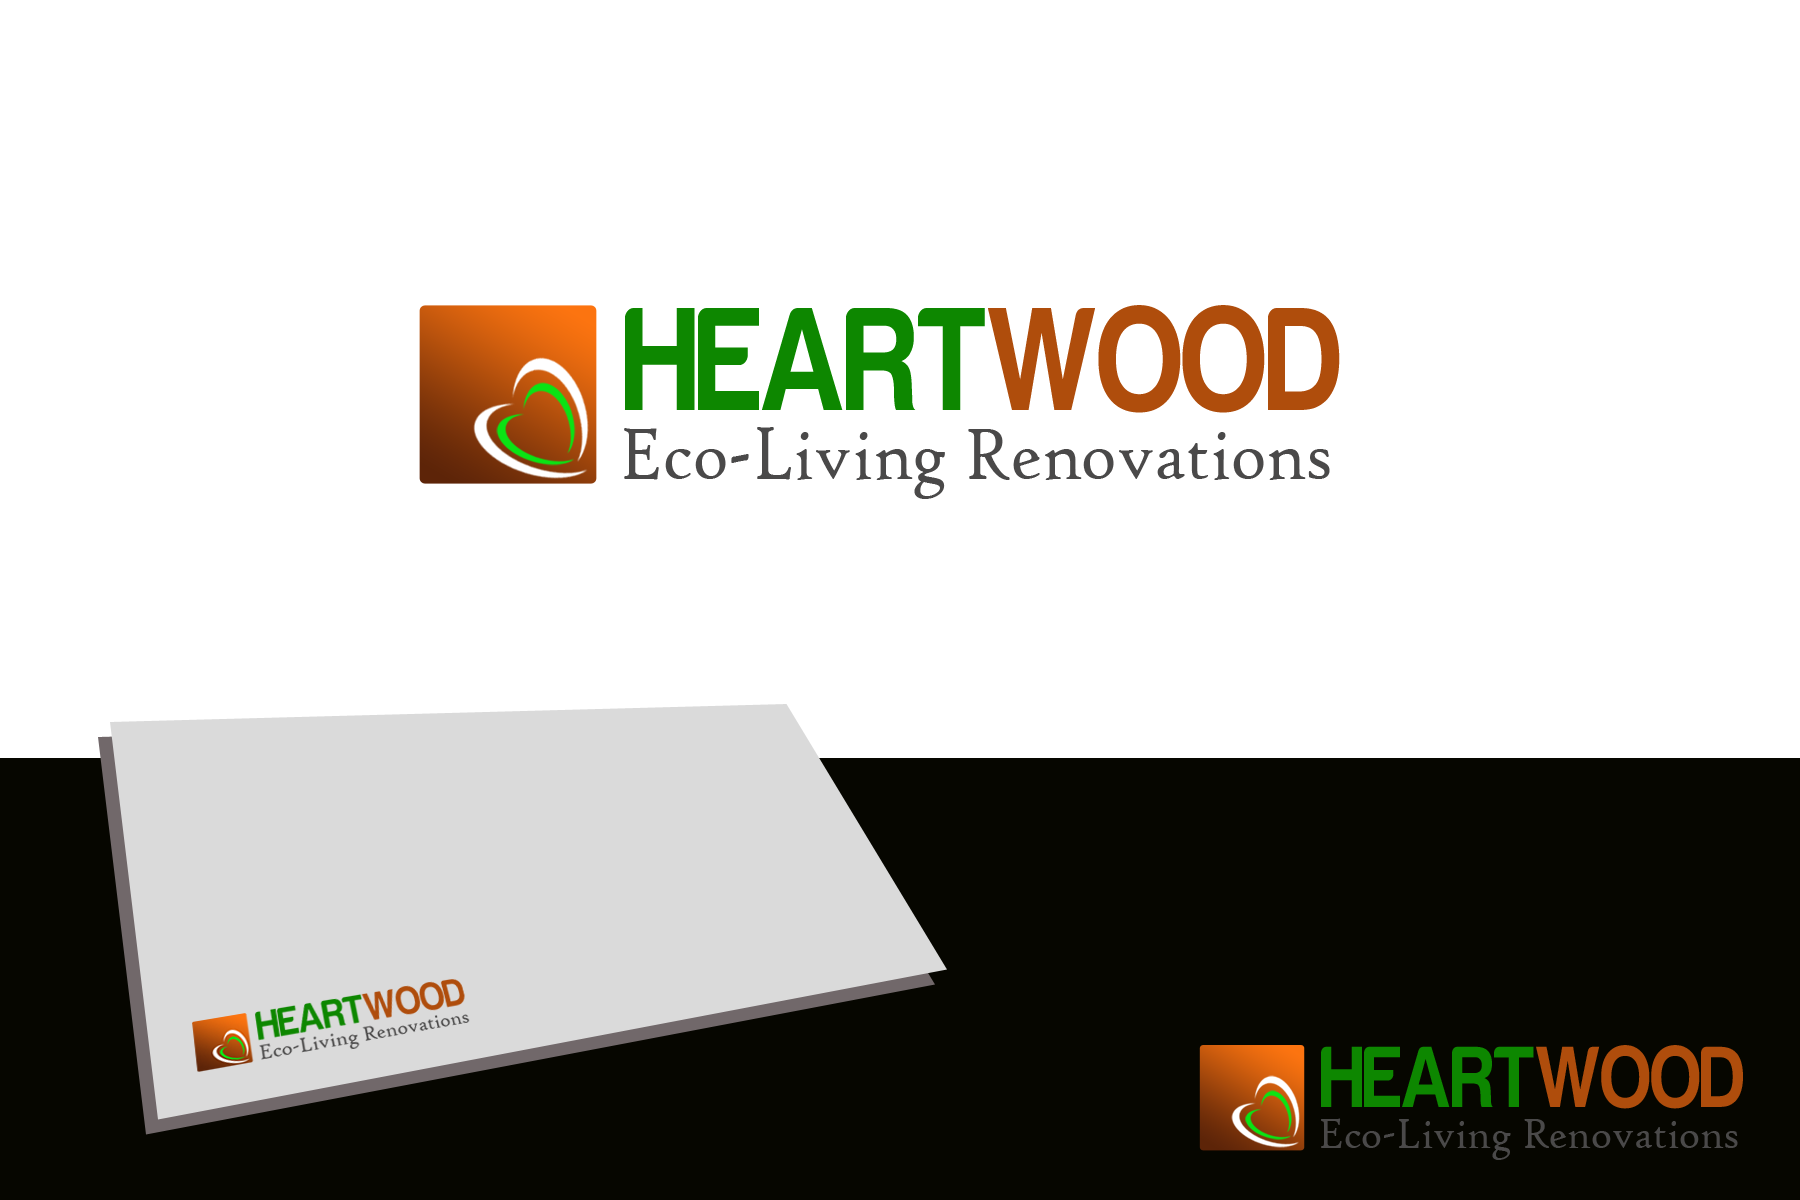 Logo Design by Golden_Hand - Entry No. 8 in the Logo Design Contest New Logo Design for Heartwood Eco-Living Renovations.